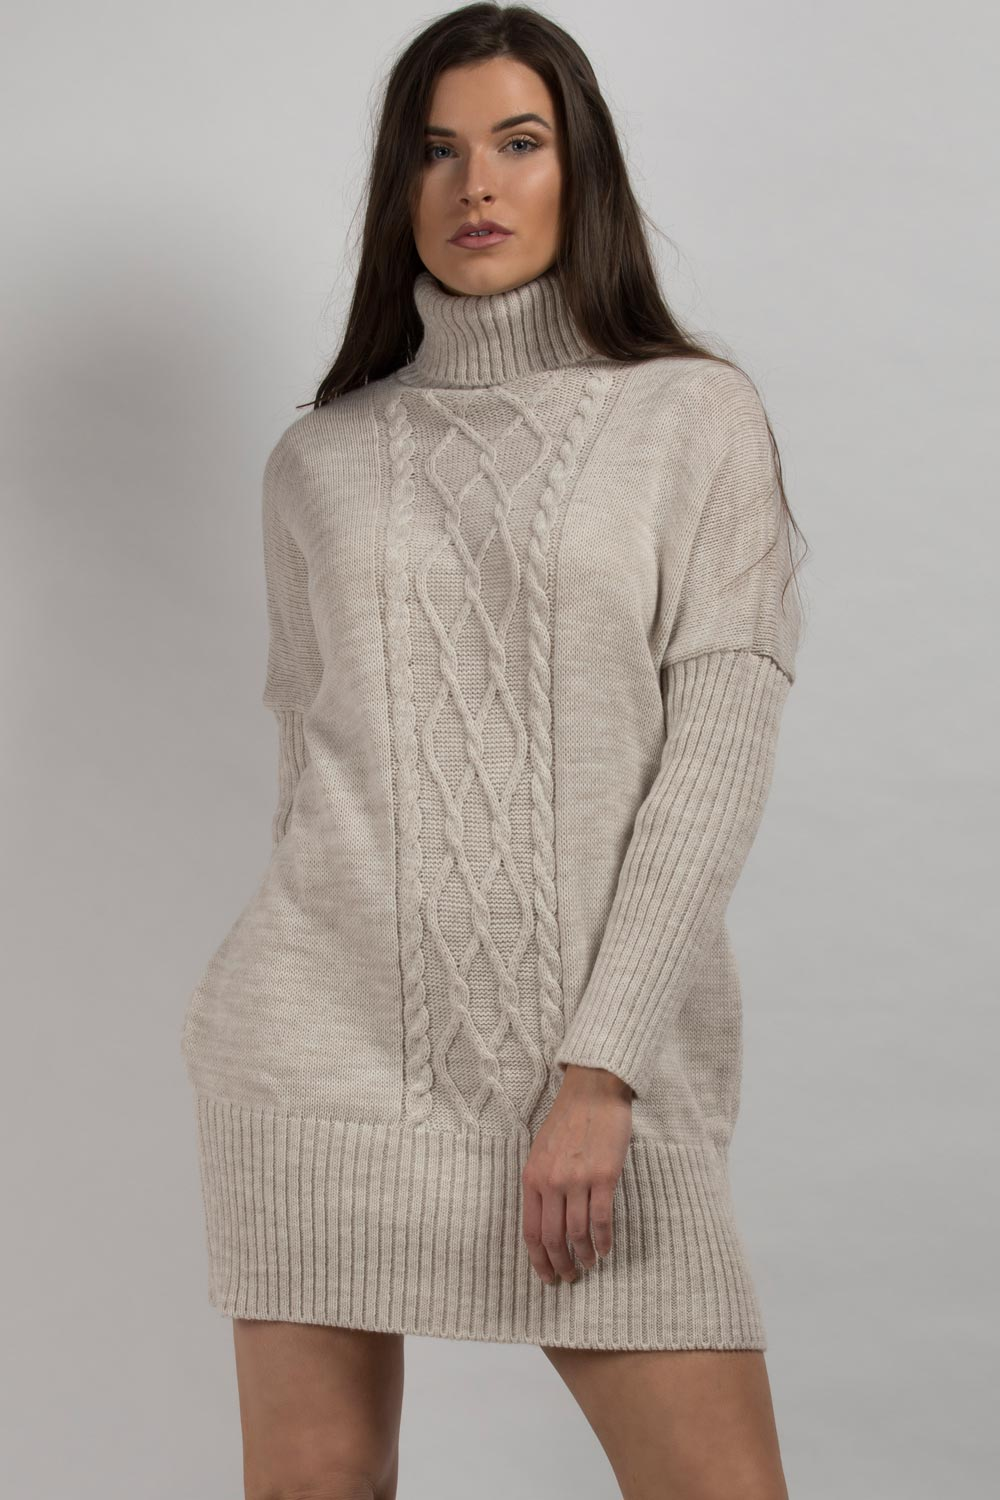 oversized jumper dress styledup fashion